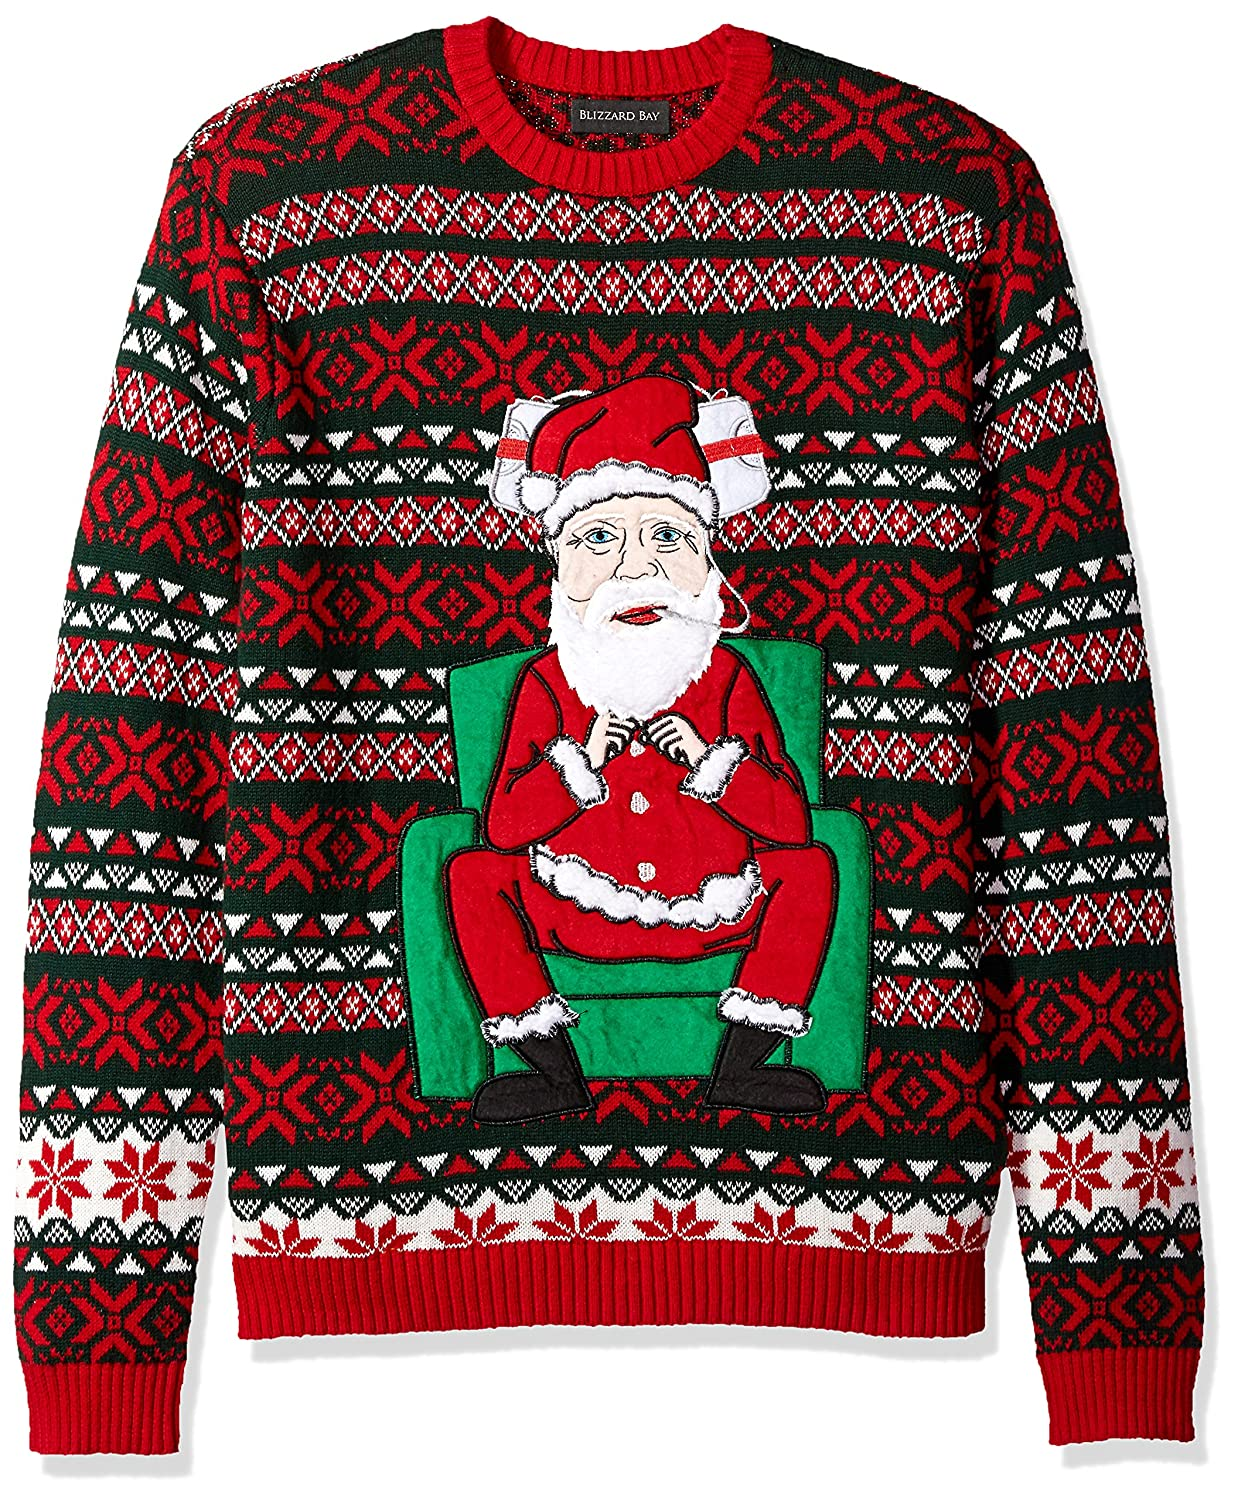 Blizzard Bay Men's Santa Claus Themed Ugly Christmas Sweater Blizzard Bay Mens Apparel E62251